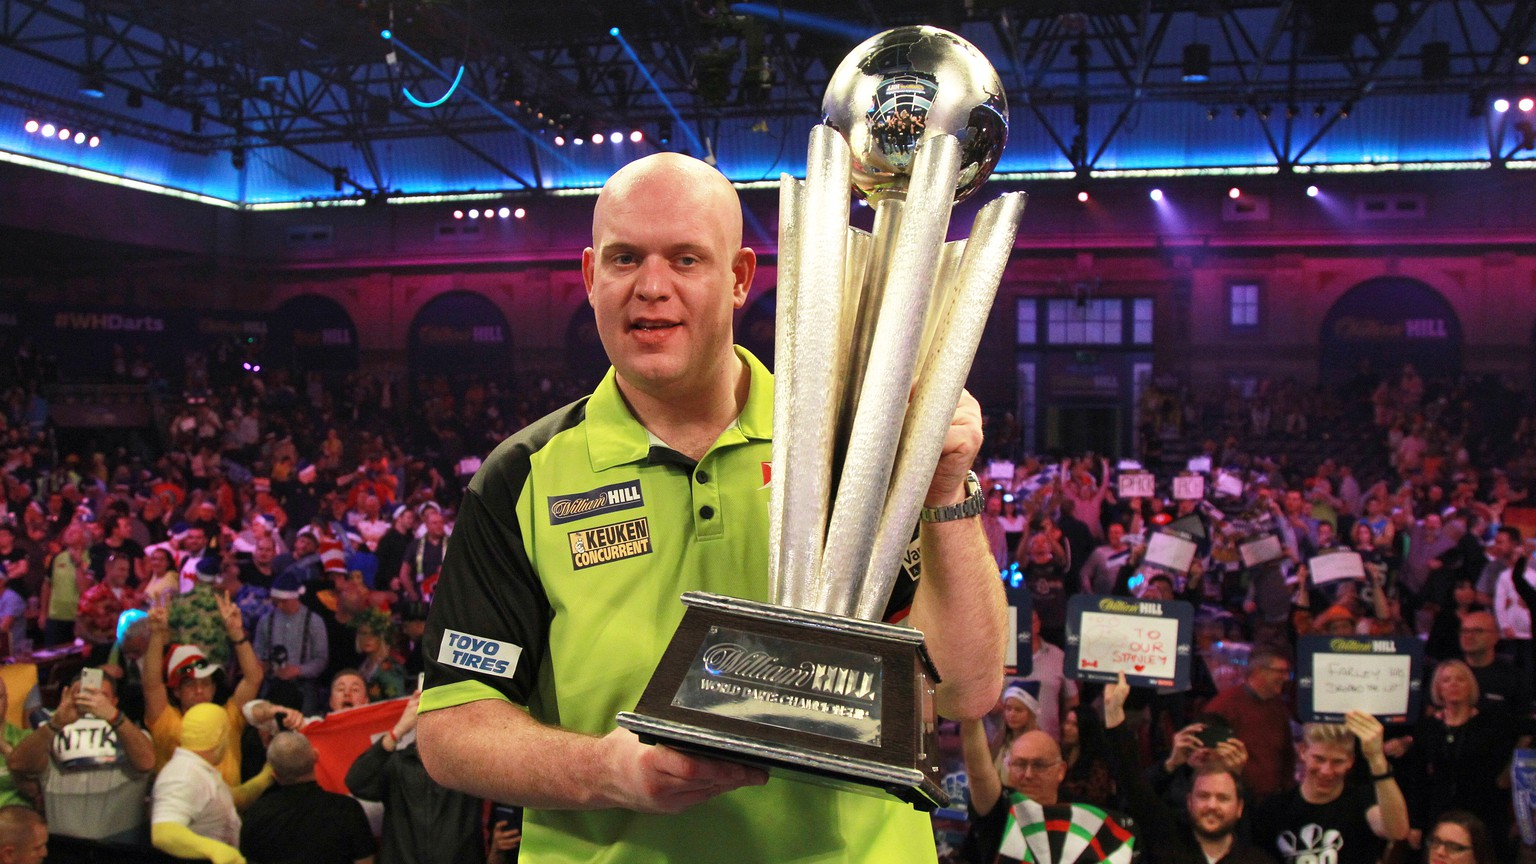 epa07257608 Dutch Michael van Gerwen celebrates with the trophy after winning the PDC World Championship final match against British Michael Smith at the Alexander Palace in North London, Britain, 01 January 2019.  EPA/SEAN DEMPSEY